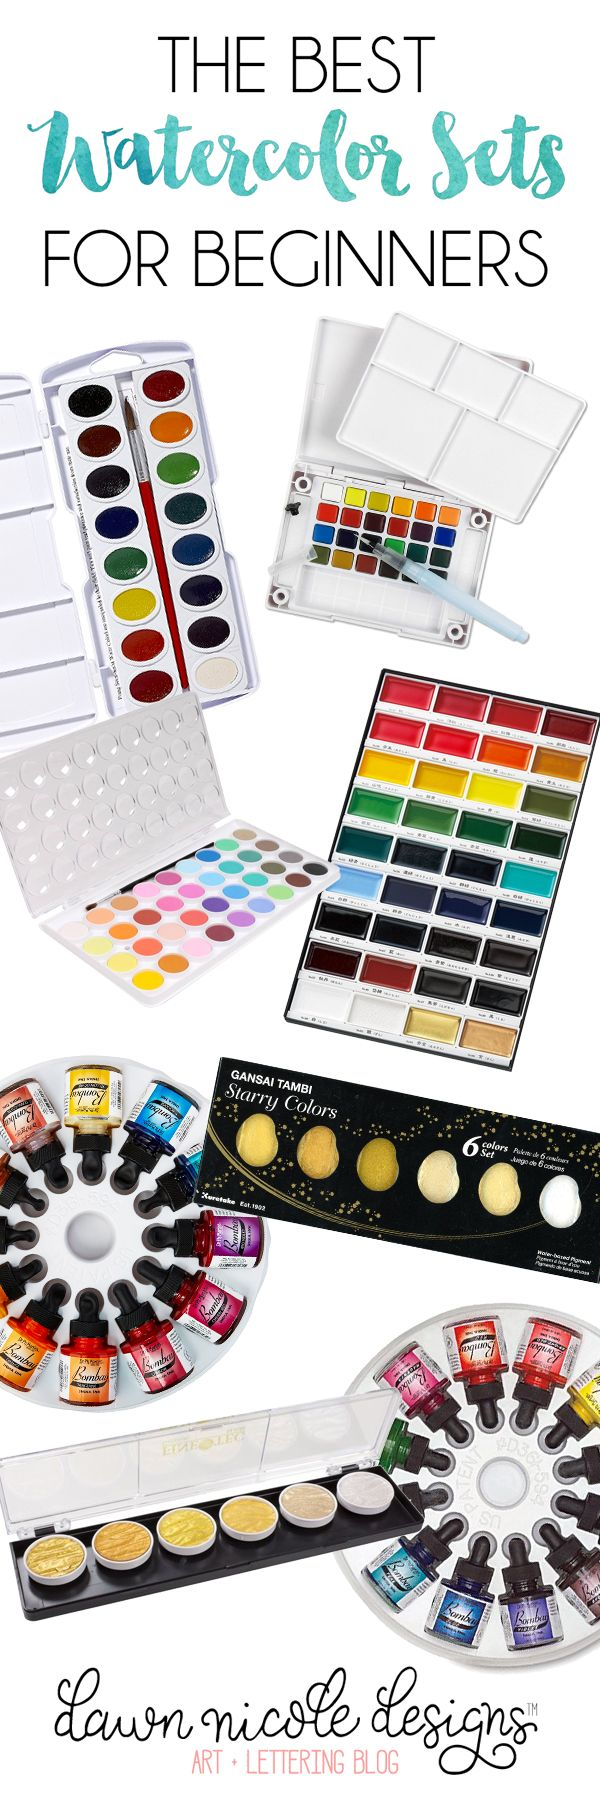 Best watercolor sets for beginners